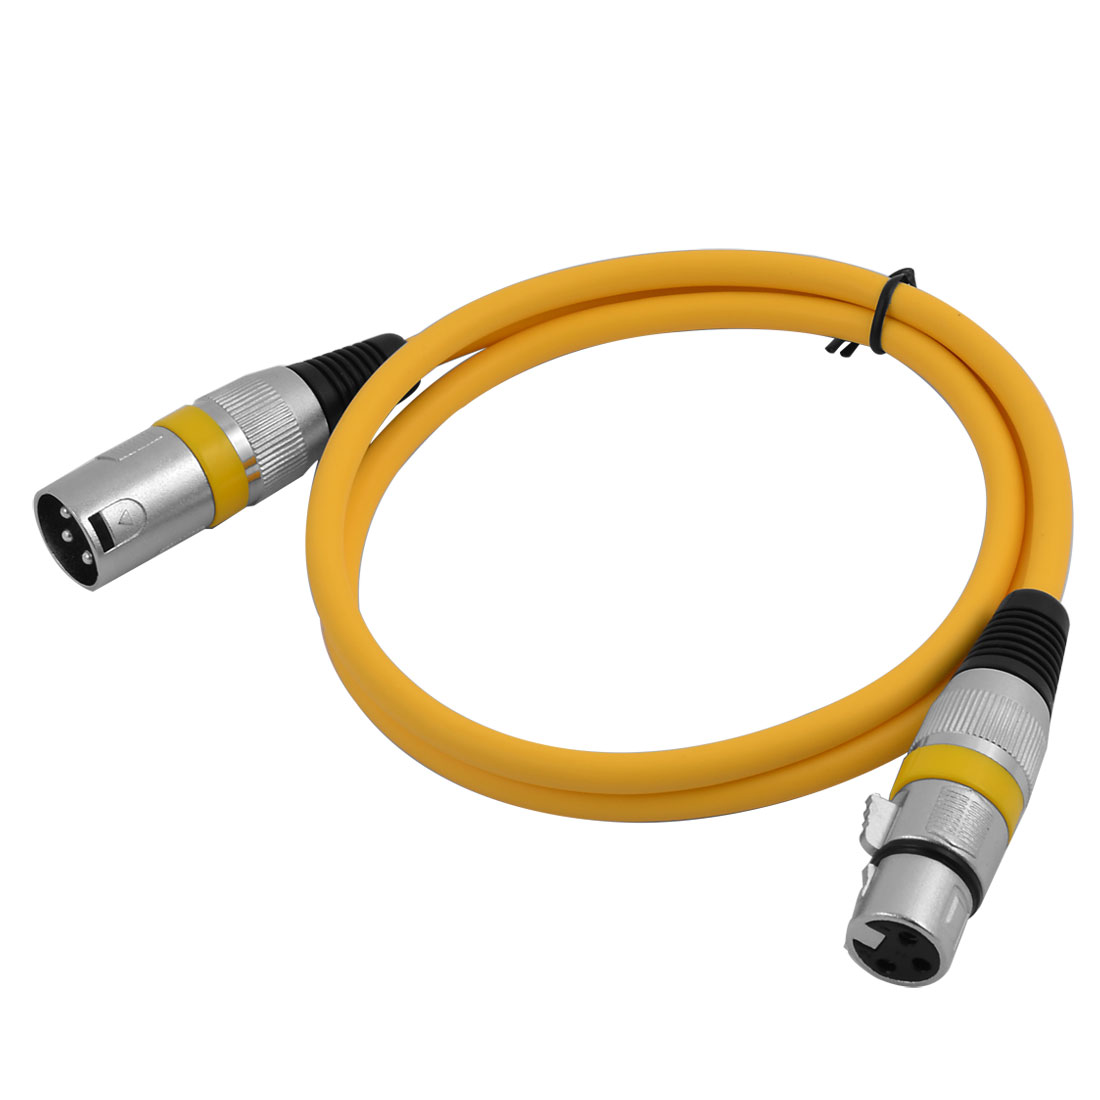 Microphone Audio XLR Male to Female Mixer Extension Cable Cord Yellow 3.3Ft Length